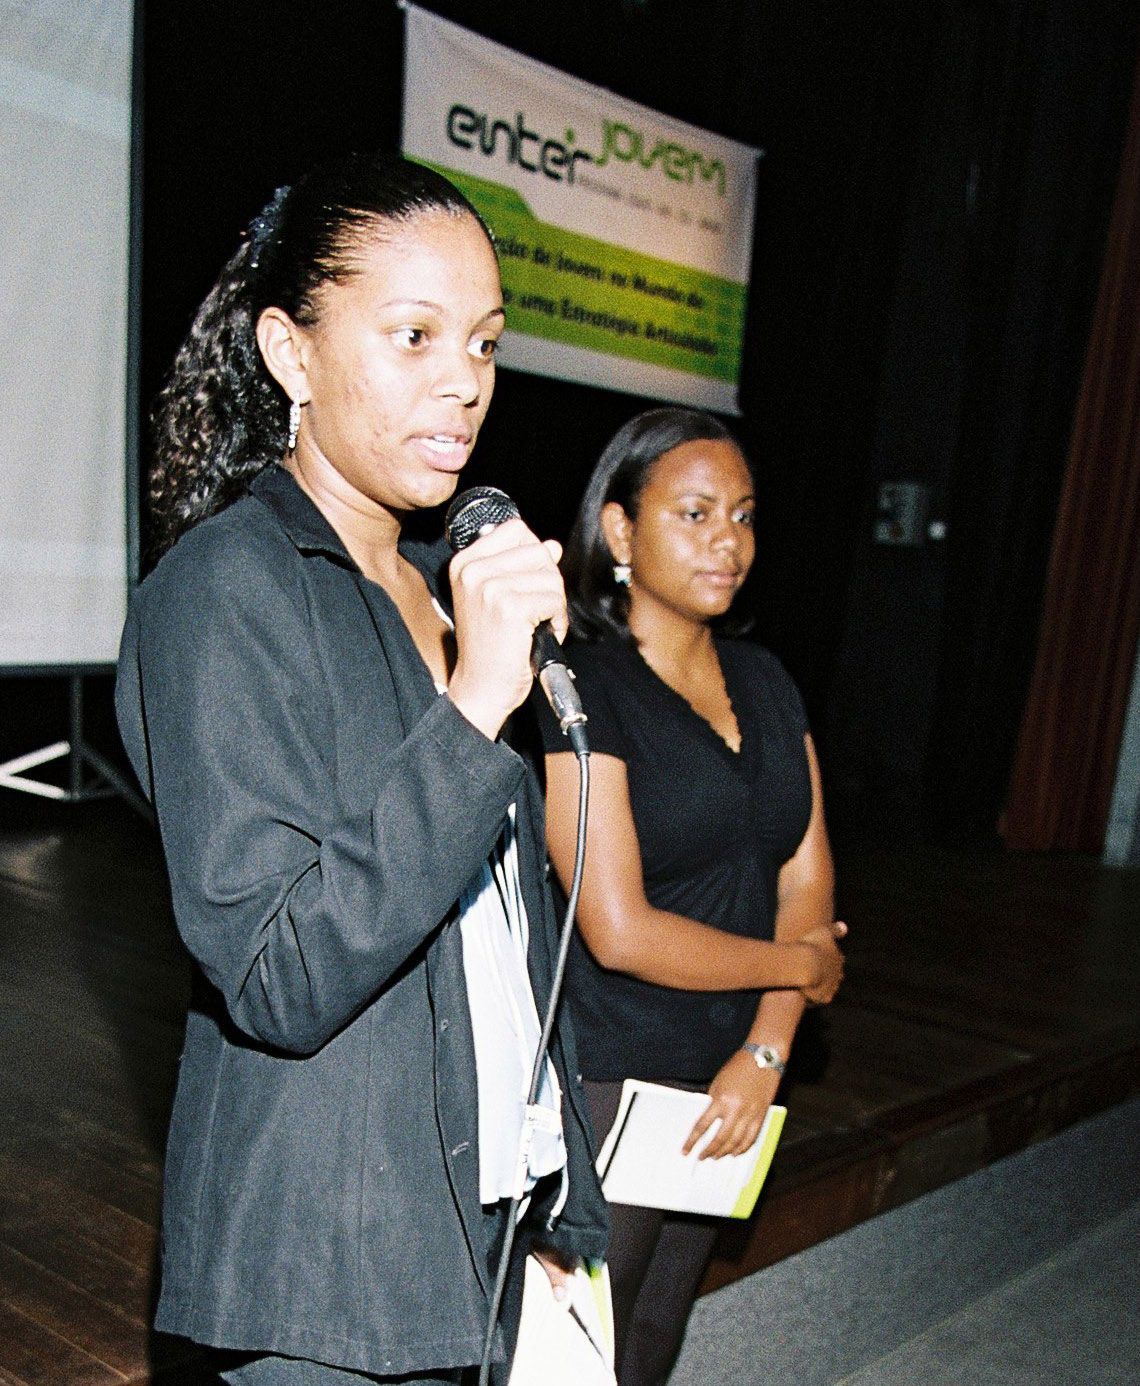 Jamile Ferreira describes her experience finding work at an Enter Jovem conference.